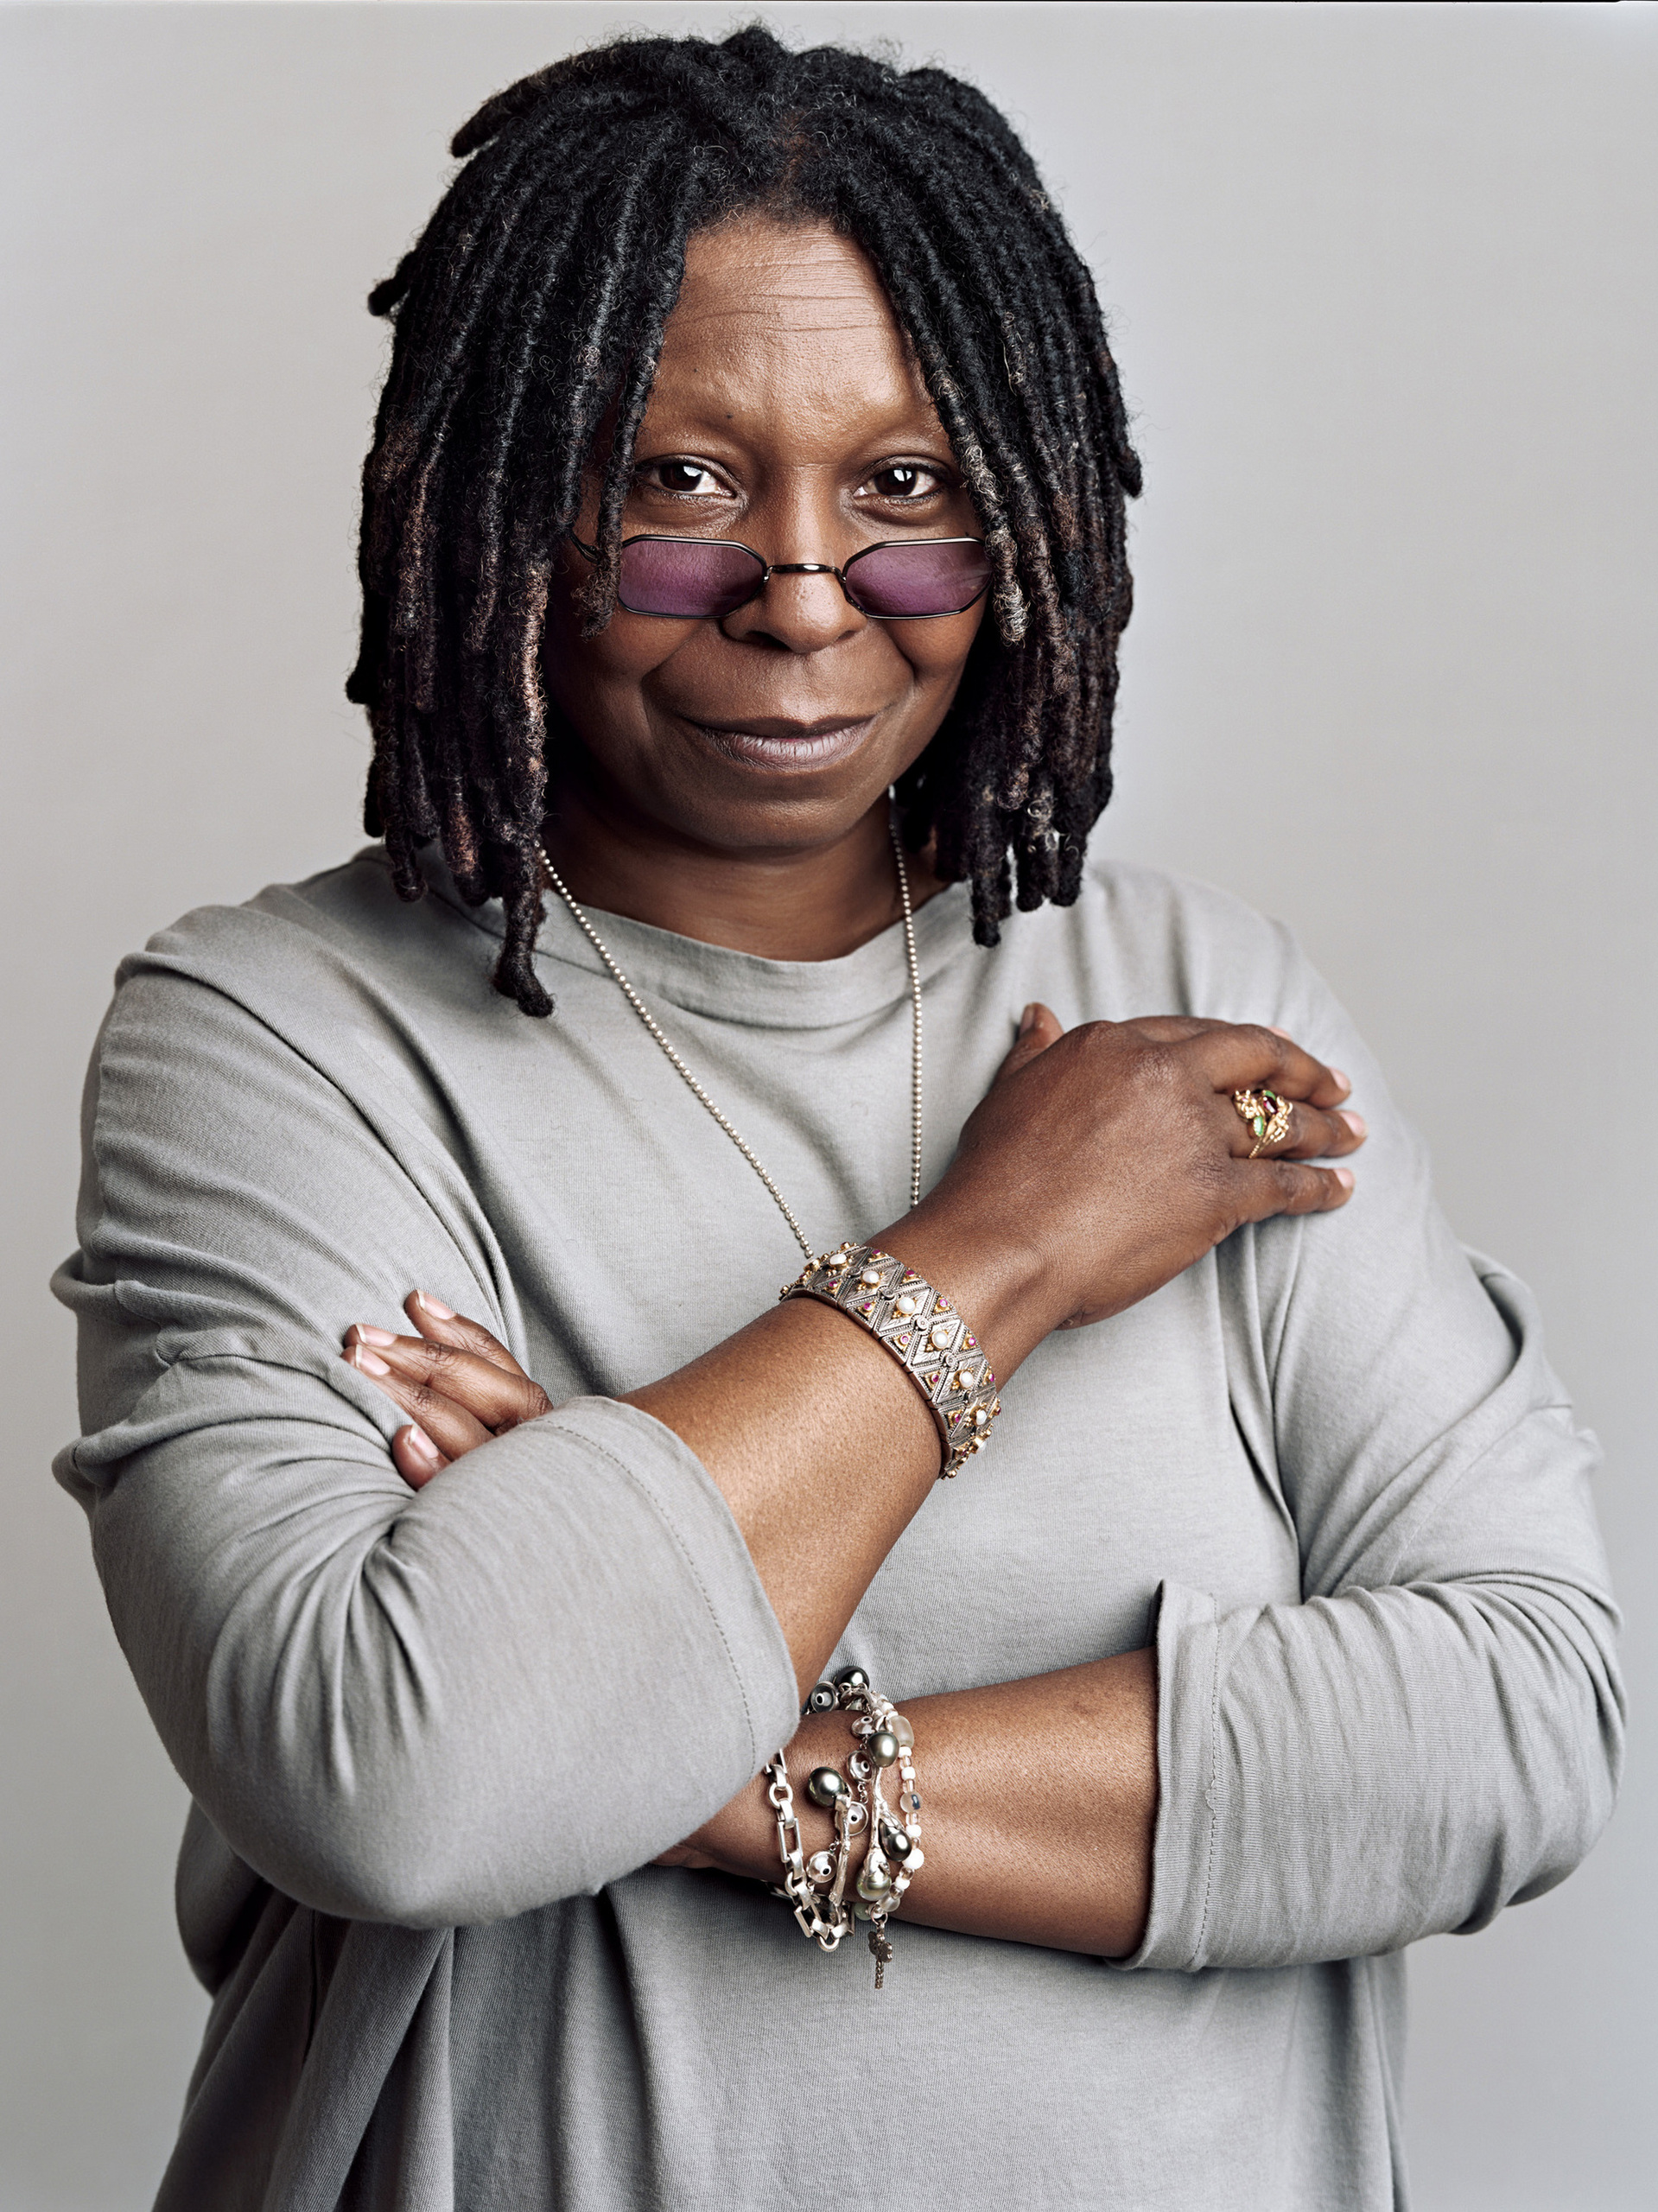 whoopi goldberg - photo #28